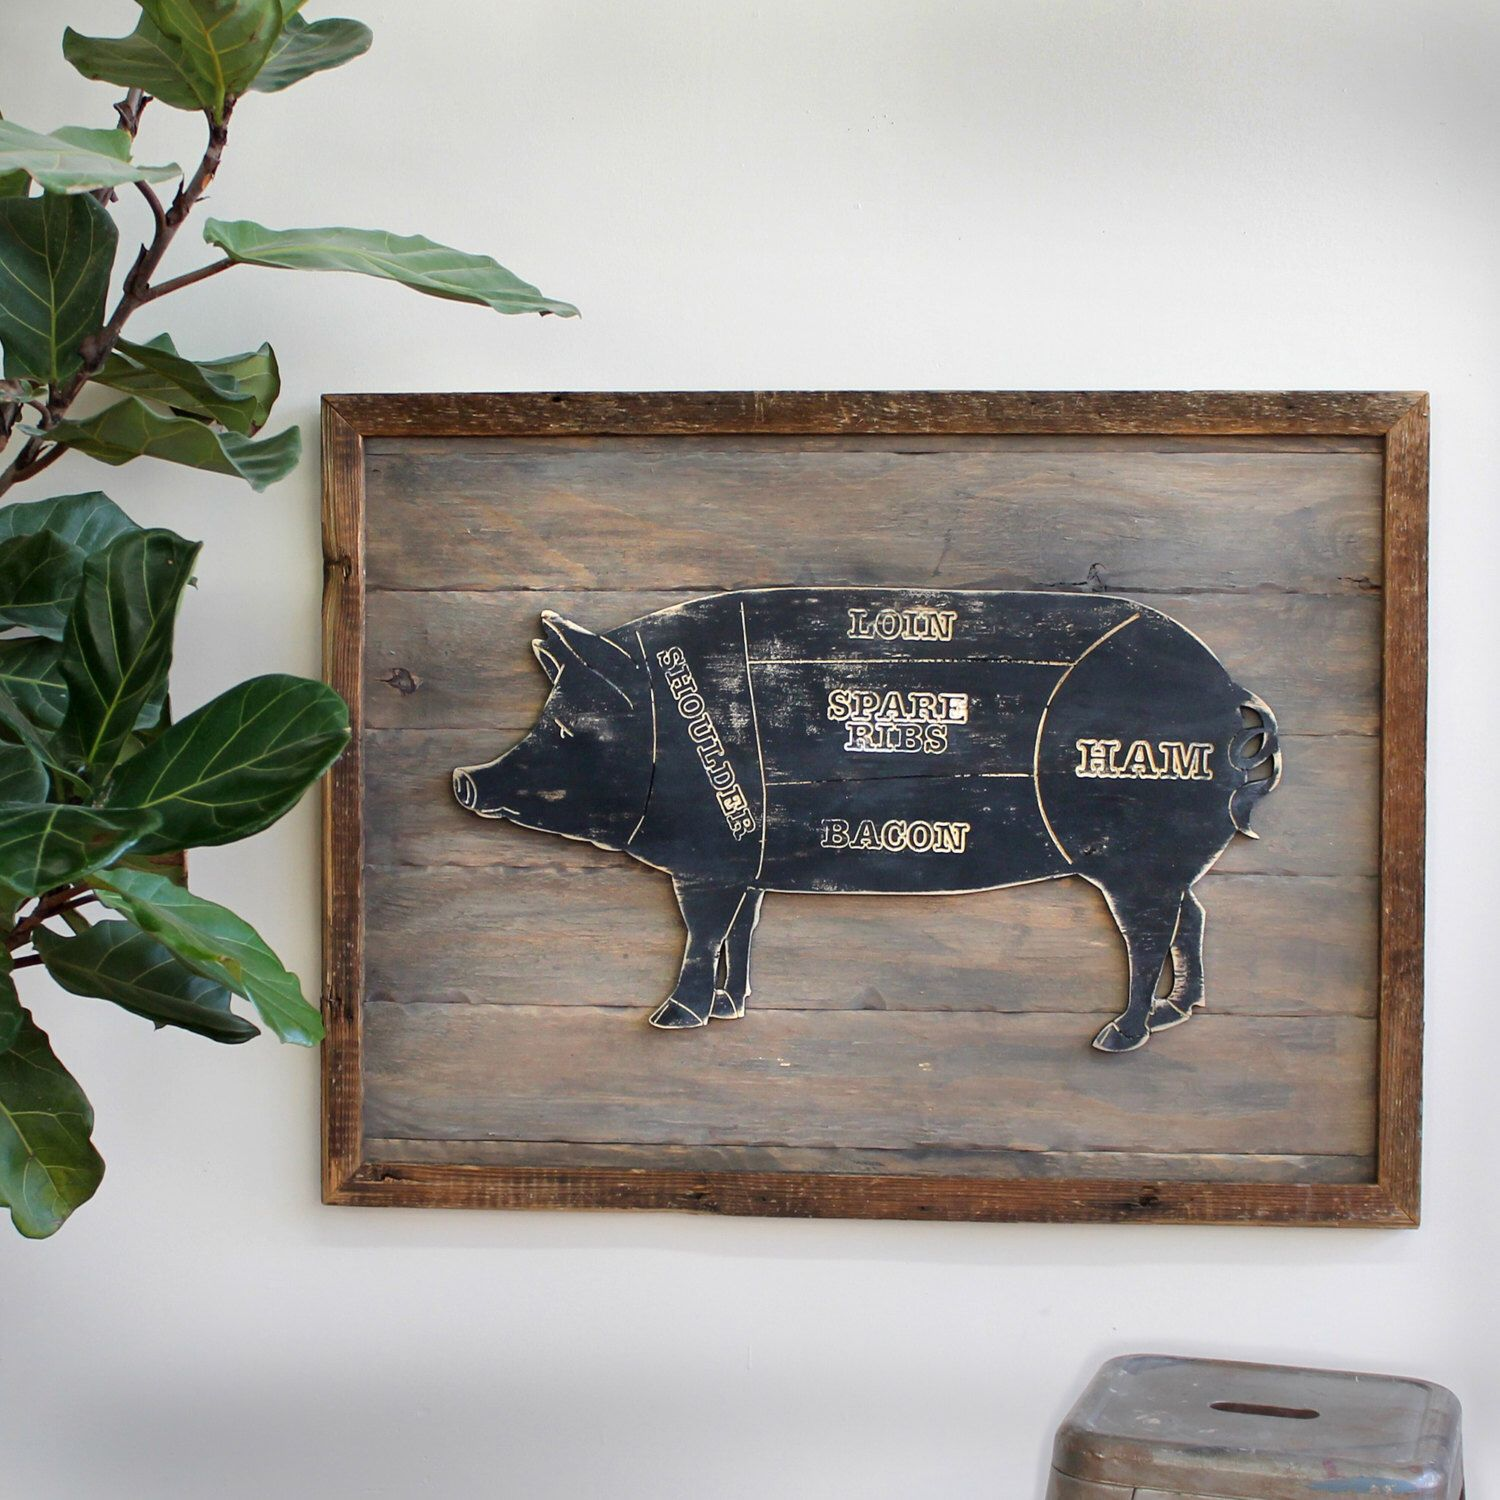 Butcher Pig Art Wooden Framed Butcher Shop Meat Chart Kitchen Wall